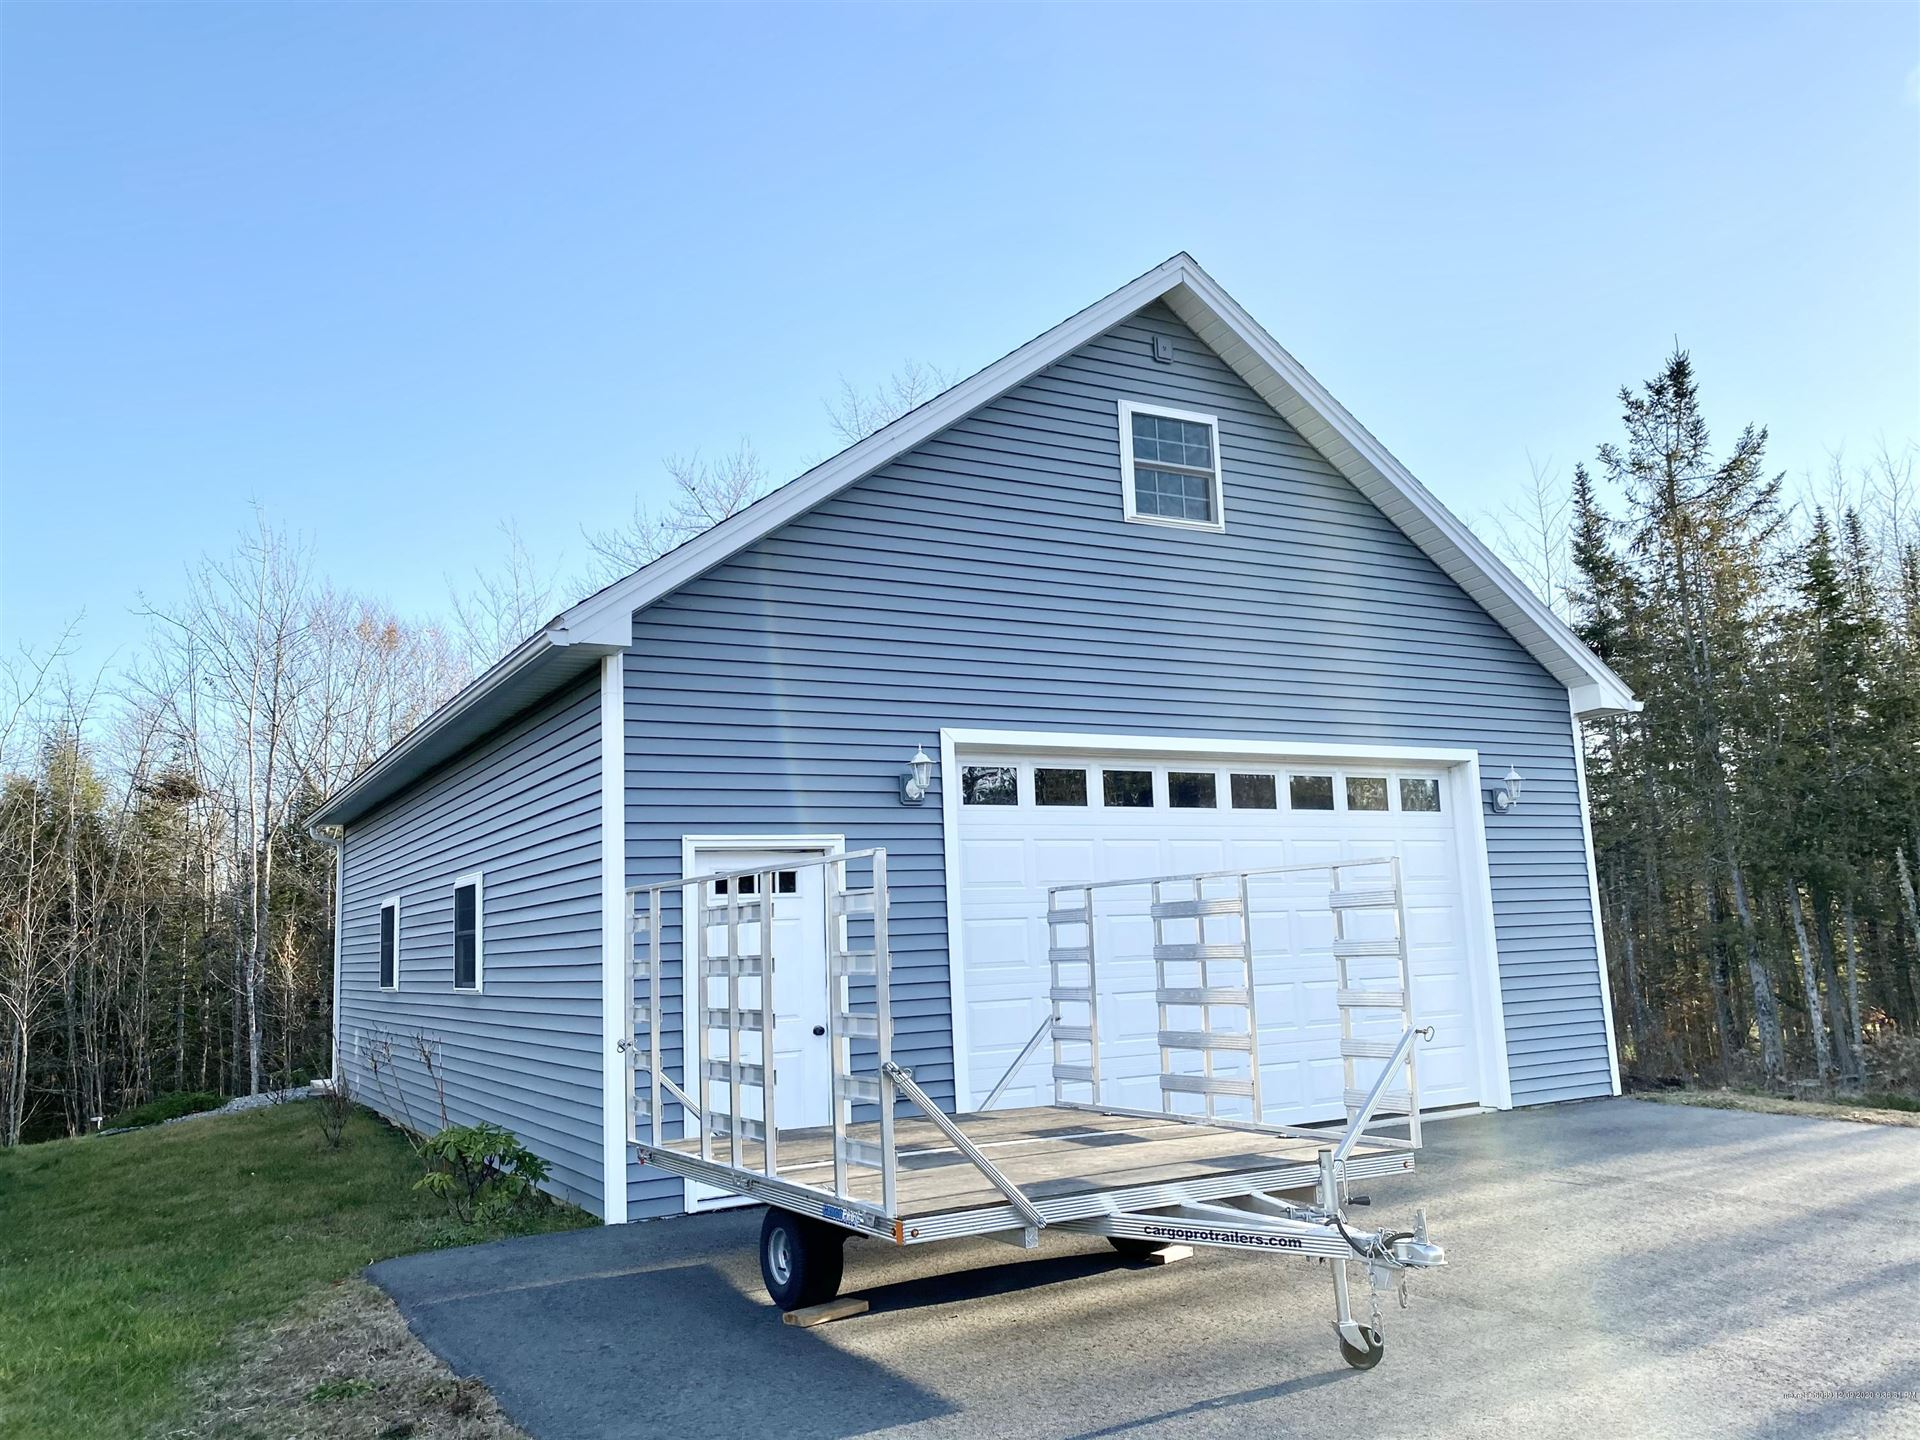 Photo of 112 Timberview Drive, Hermon, ME 04401 (MLS # 1477563)